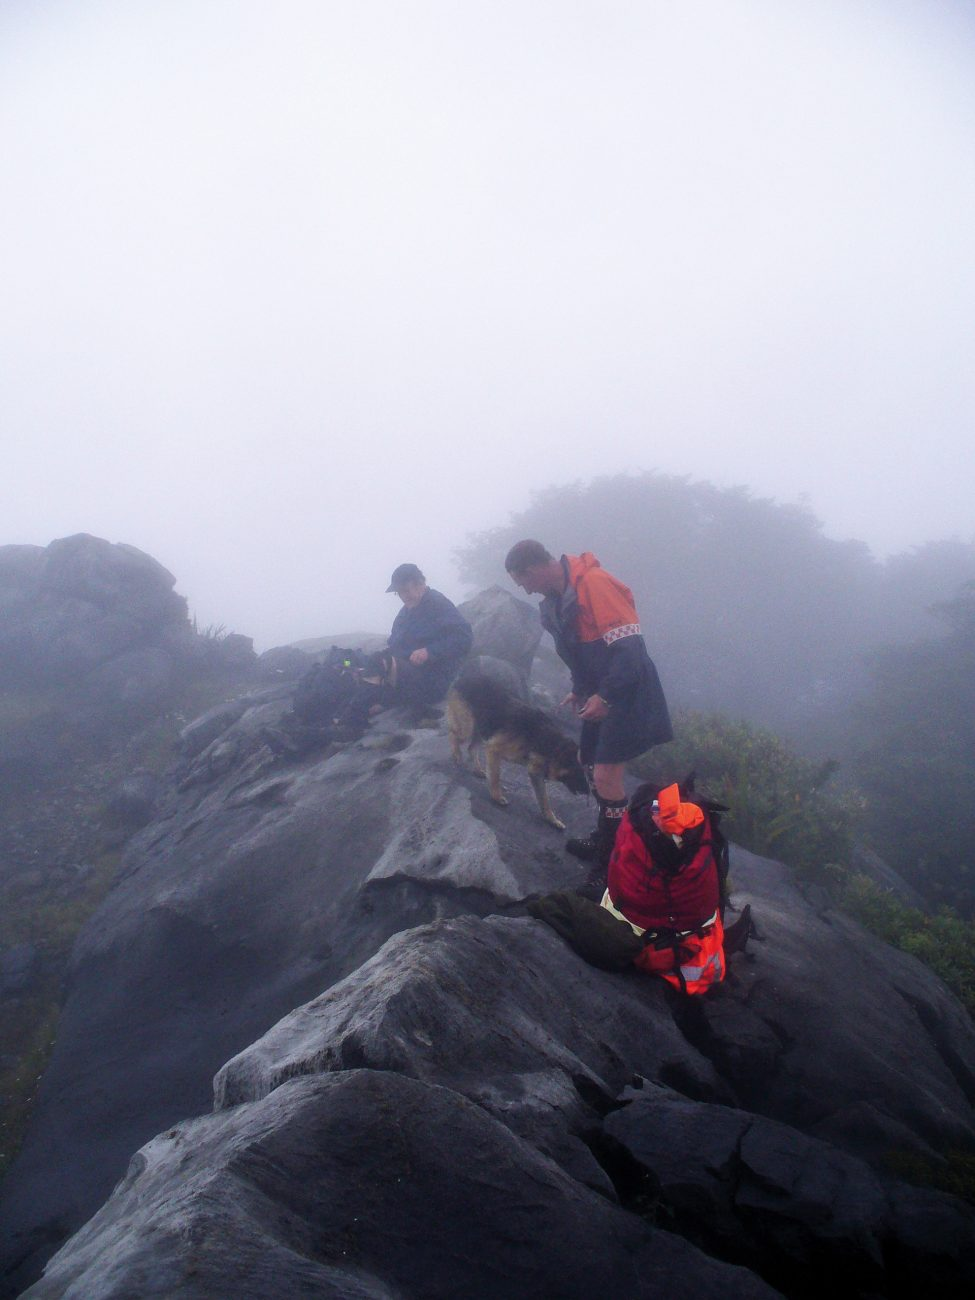 On Thursday December 27, 2012, persistent misty conditions prevailed during the search. At times the volunteers could barely see an arm's-length in front of them.